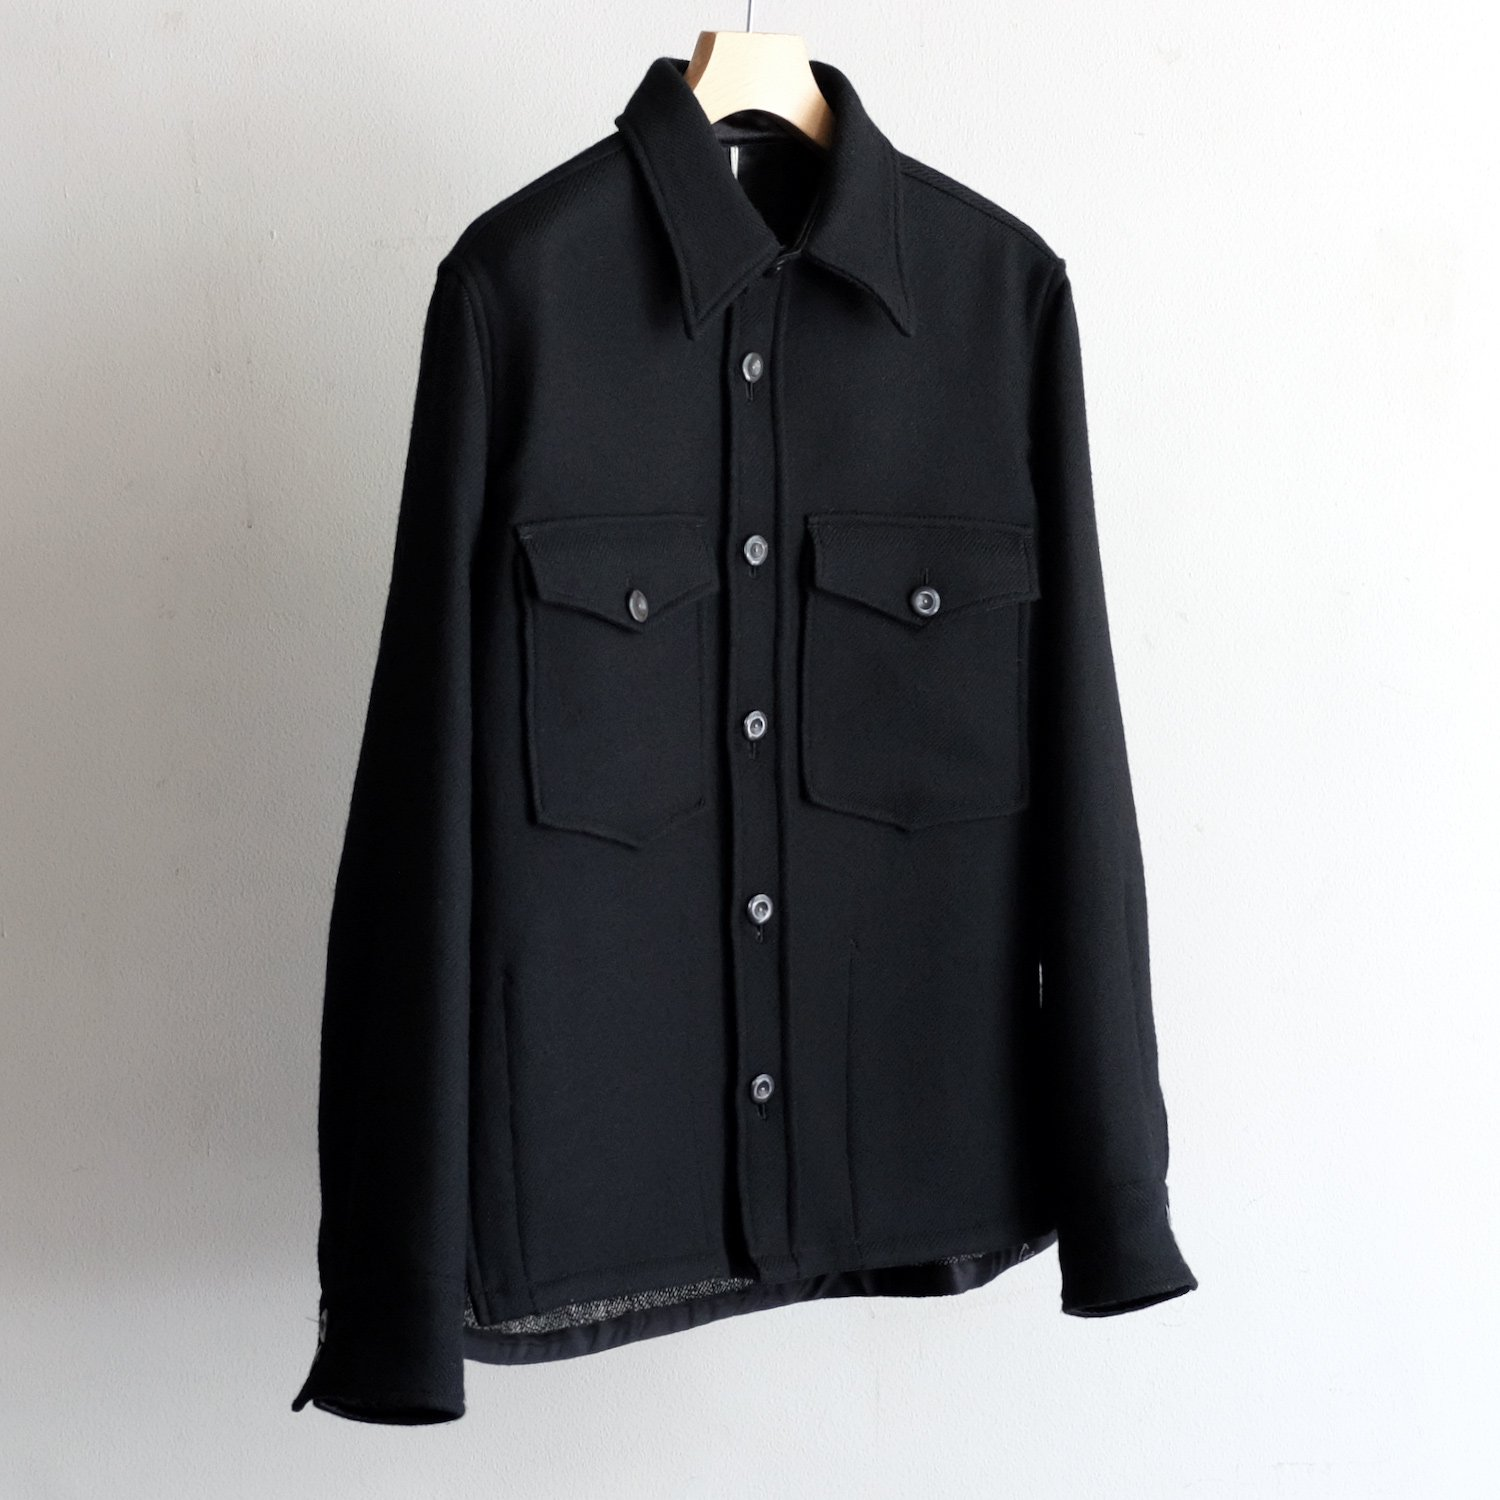 CPO SHIRTS JACKET [BLACK / GRAY DEAD STOCK DOUBLE FACE]